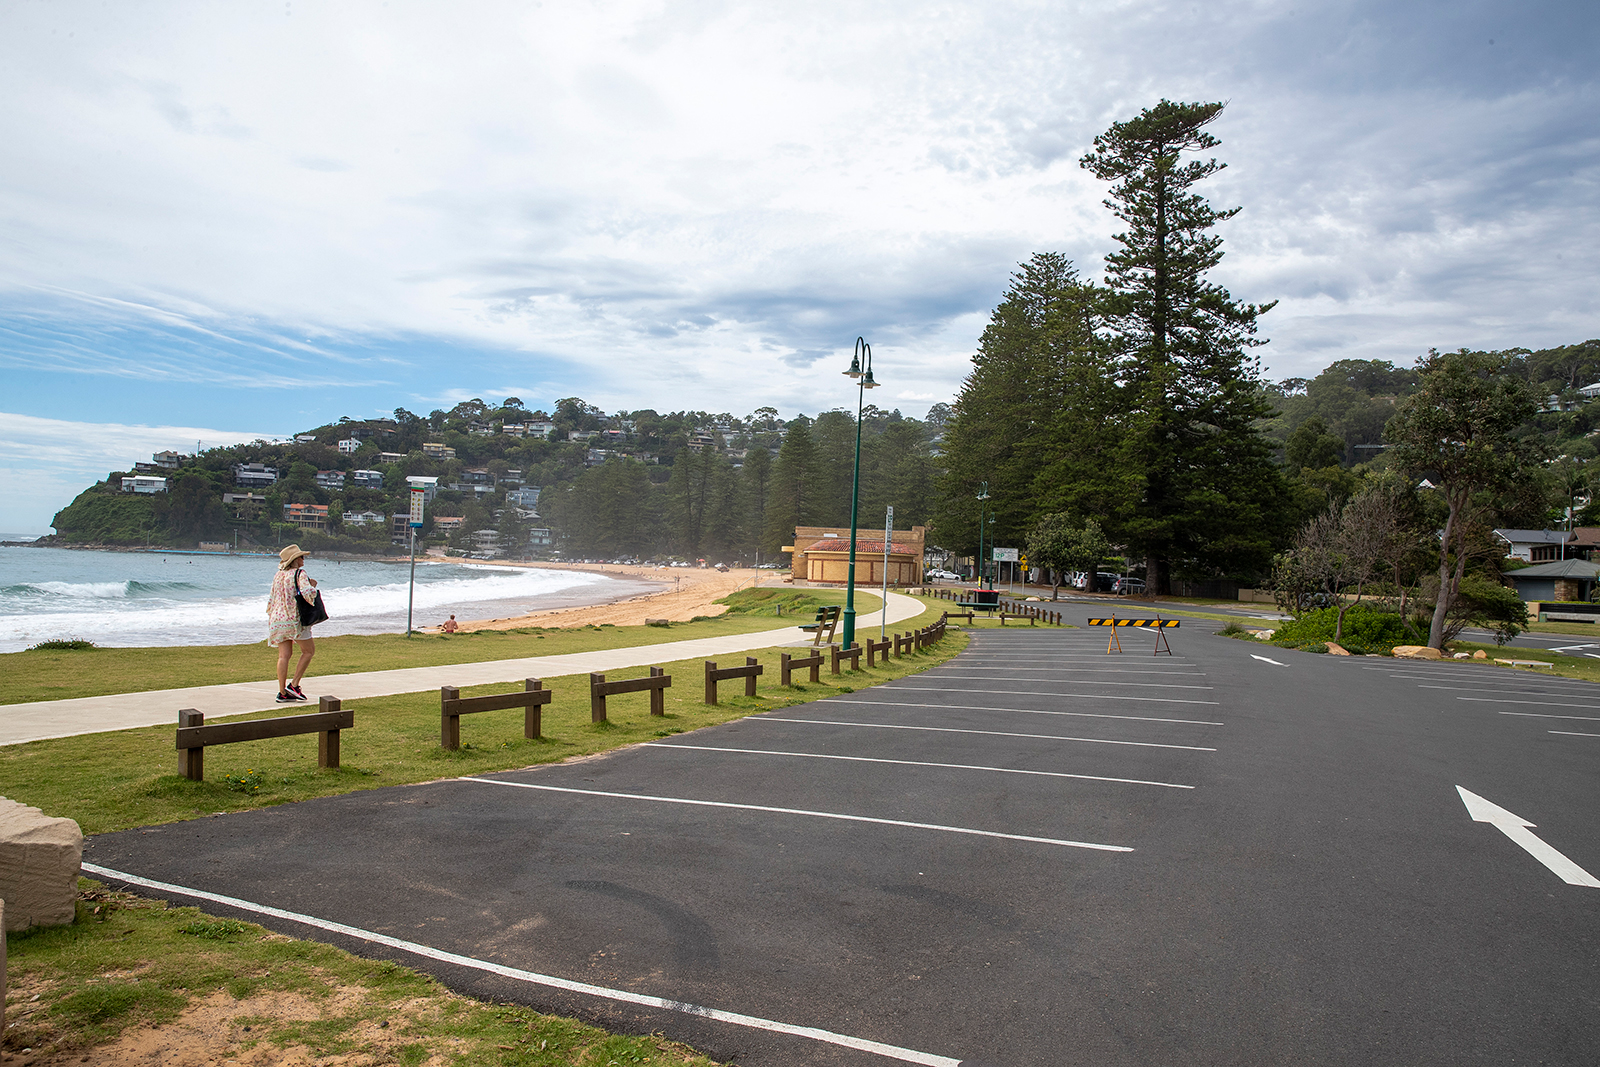 An empty parking lot is seen at Palm Beach in Sydney, on December 18.